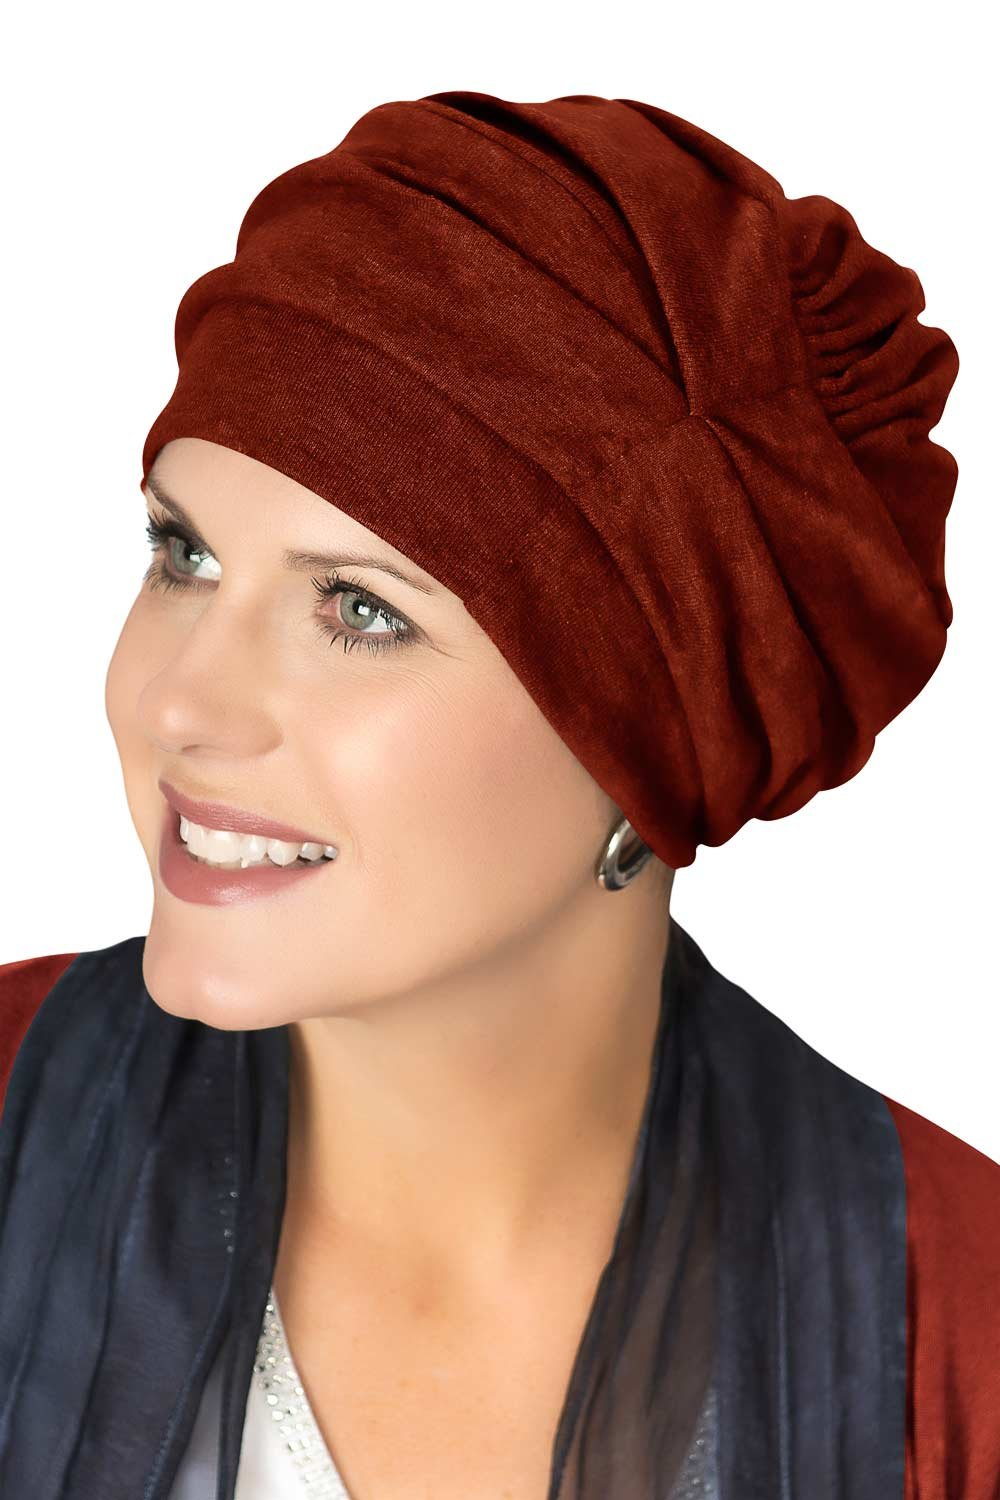 Headcovers Unlimited 100% Cotton Trinity Turban Caps Women Chemo Cancer Hair Loss Autumn